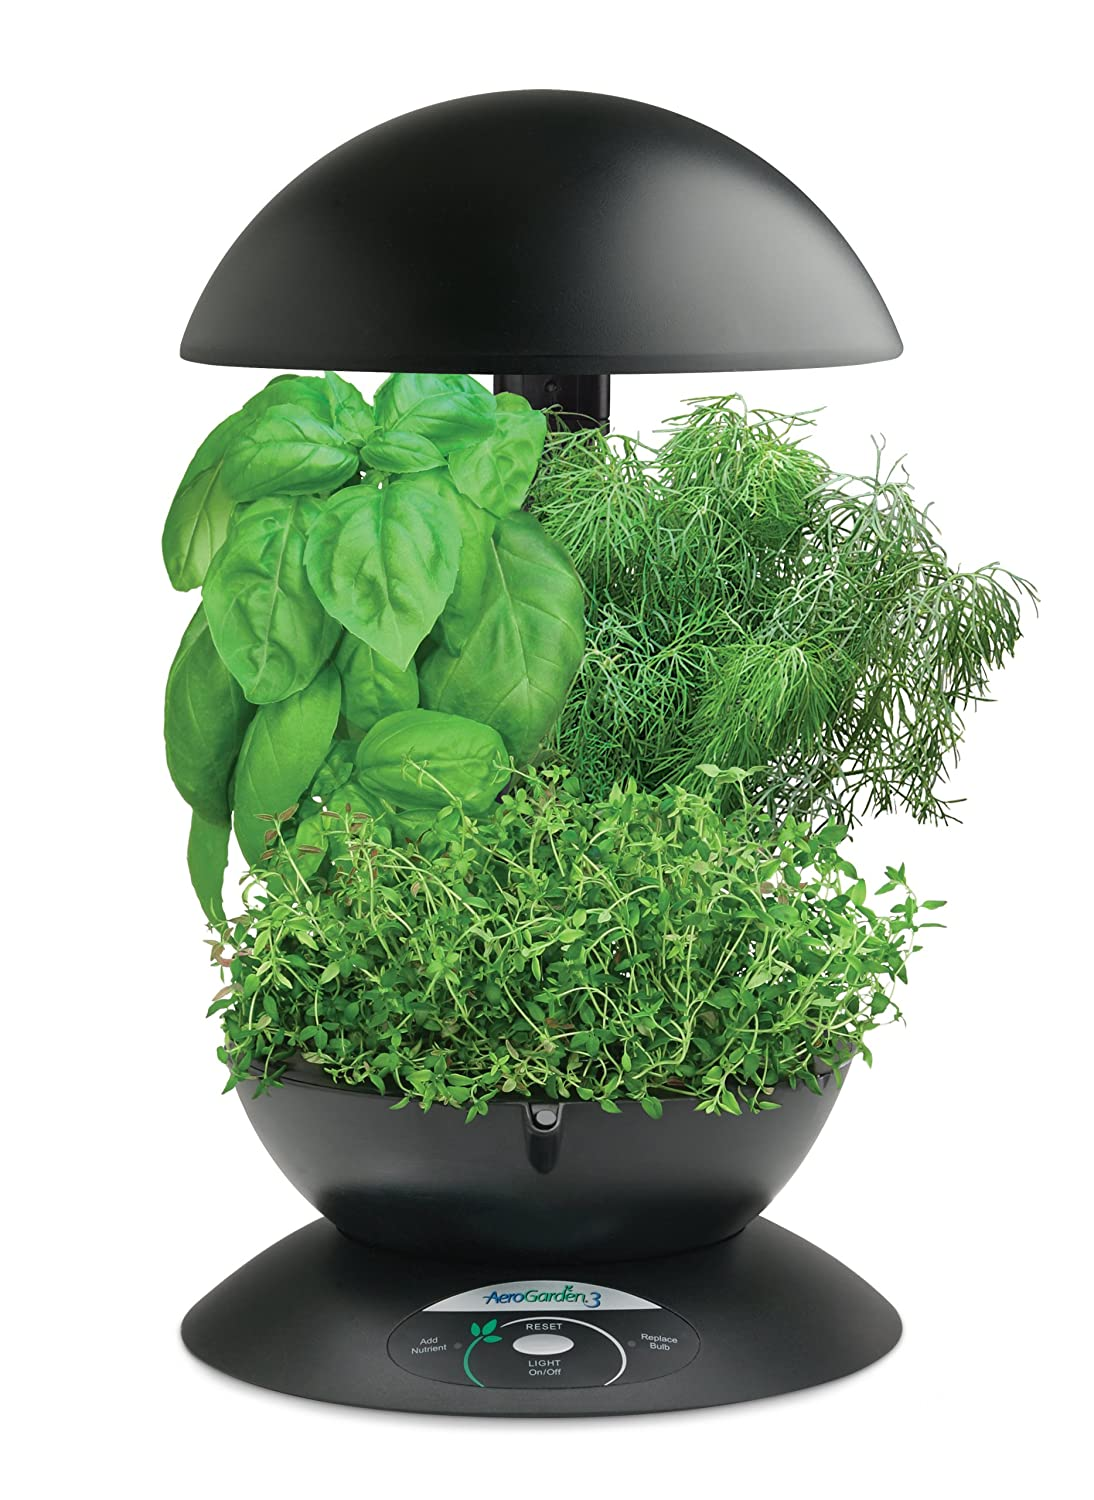 AeroGarden 3 with Gourmet Herb Seed Kit, Black $59.95